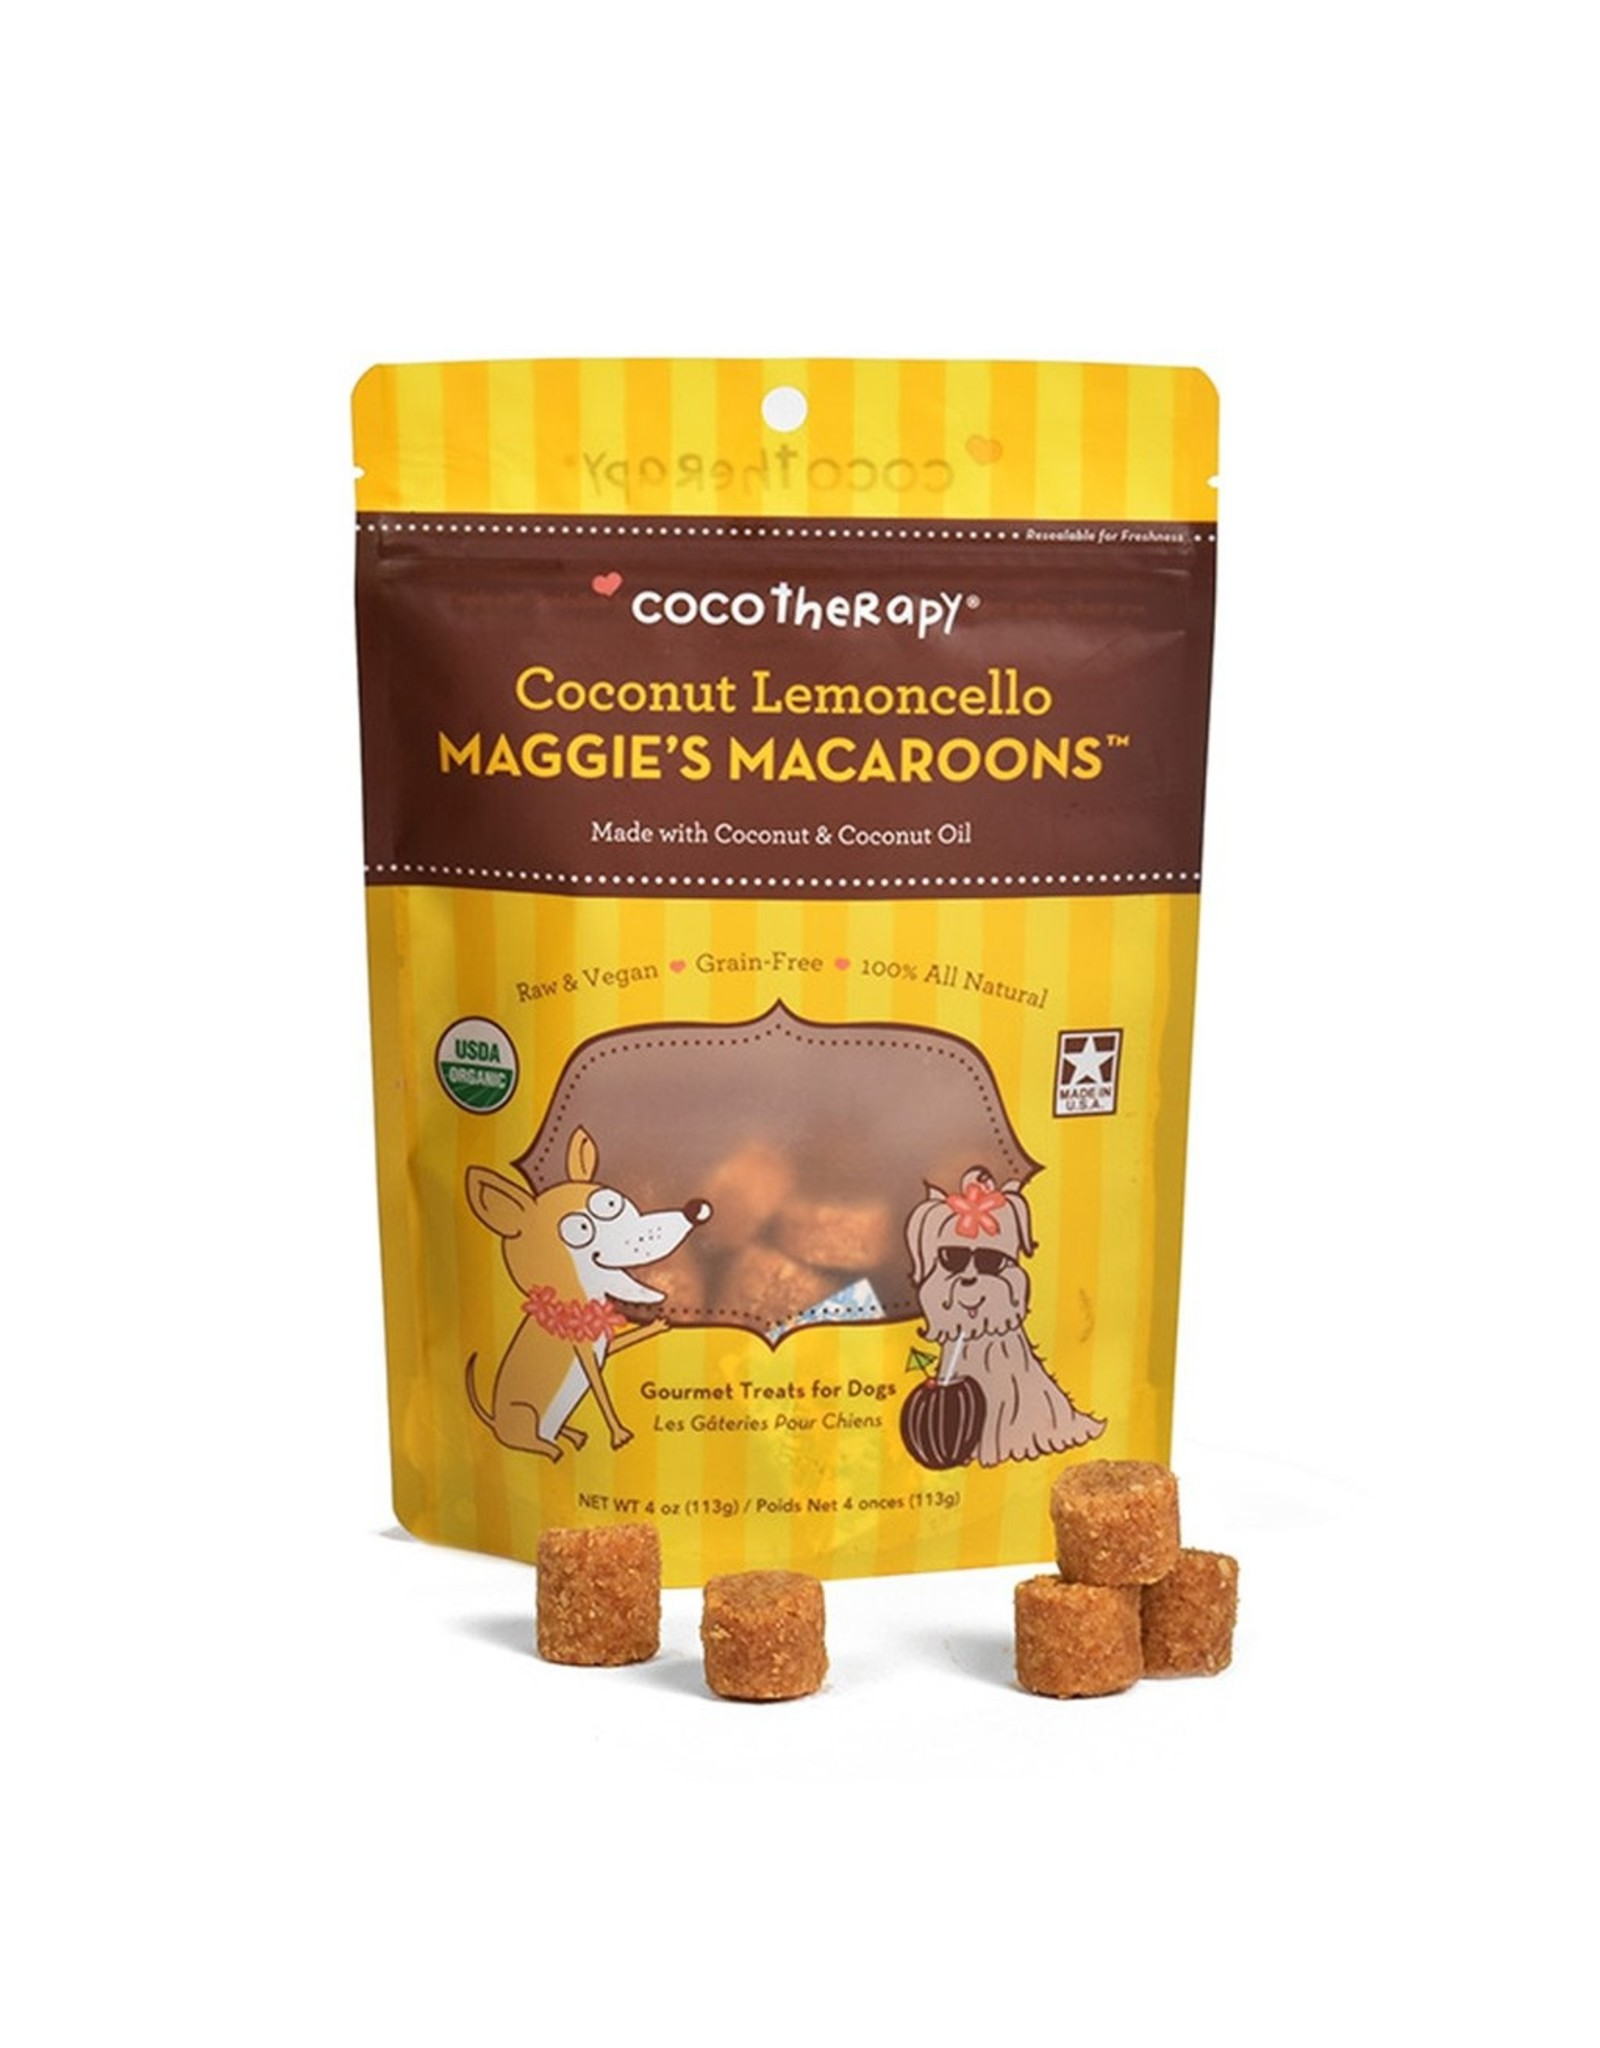 CocoTherapy COCOTHERAPY MAGGIE'S MACAROONS COCONUT LEMONCELLO 4OZ